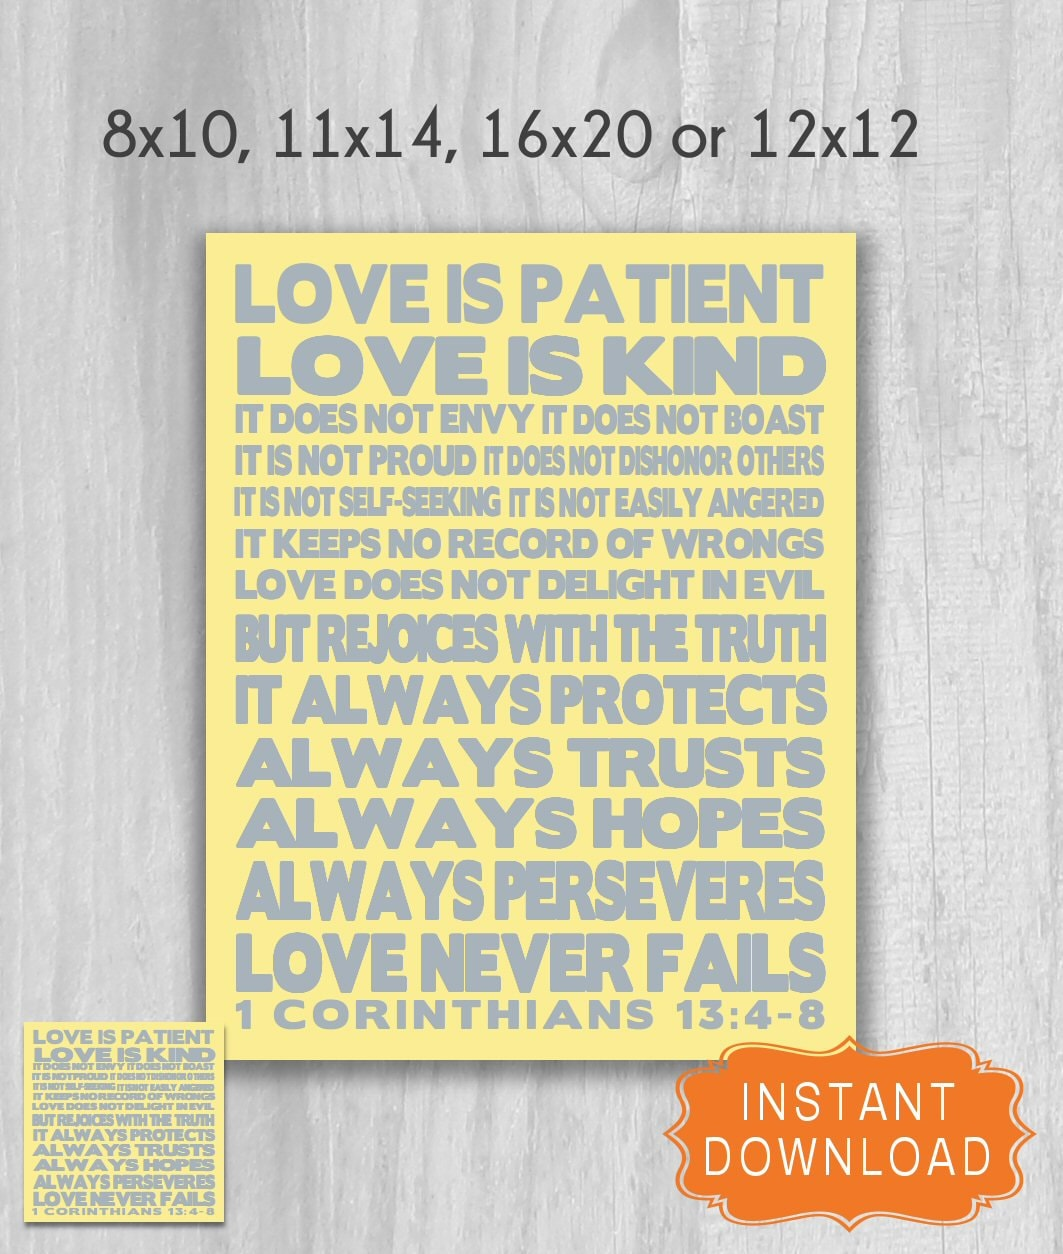 1 Corinthians 13 4 8 Love is Patient BOLD 12x12 or Poster | Etsy